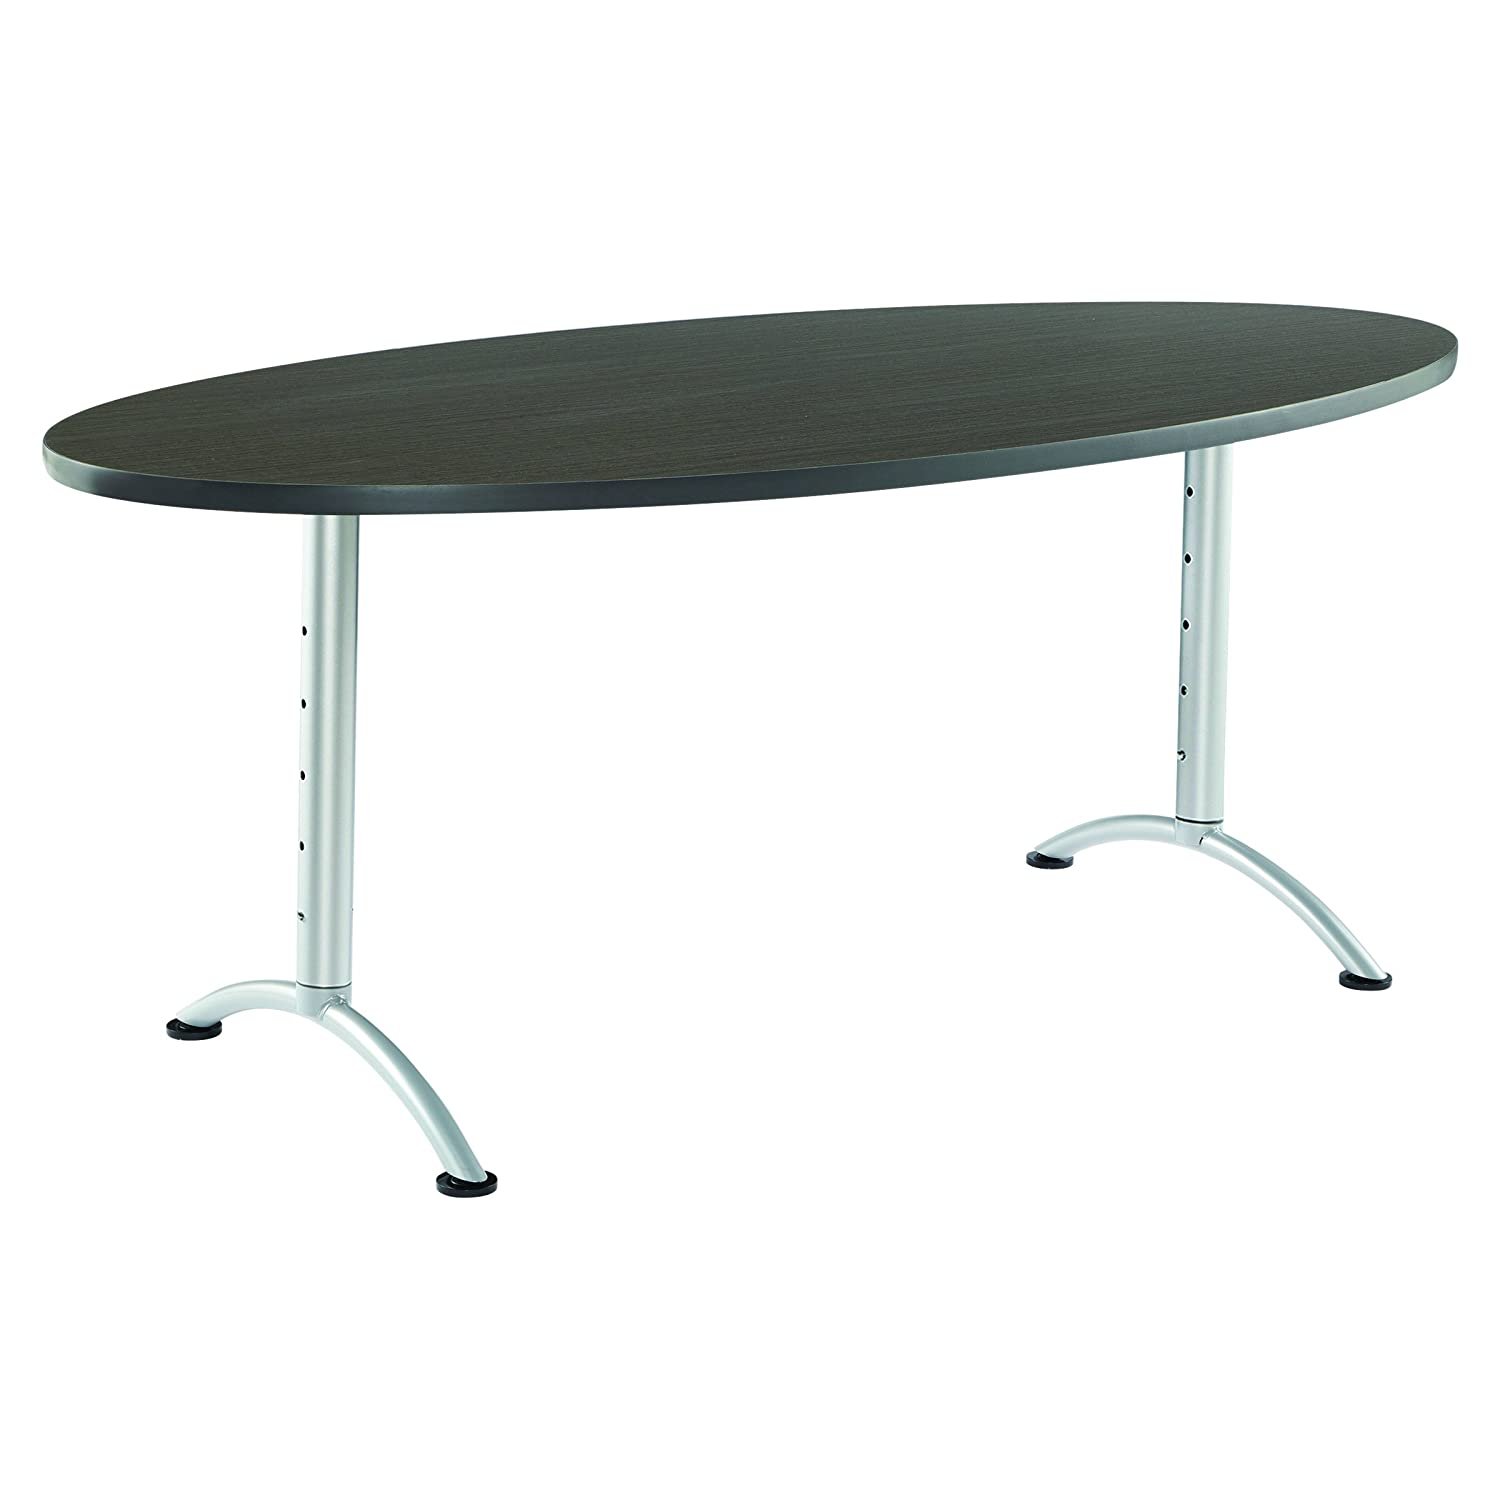 36 x 72 Iceberg ICE69625 ARC 6-foot Adjustable Height Oval Conference Table Gray Walnut//Silver Leg